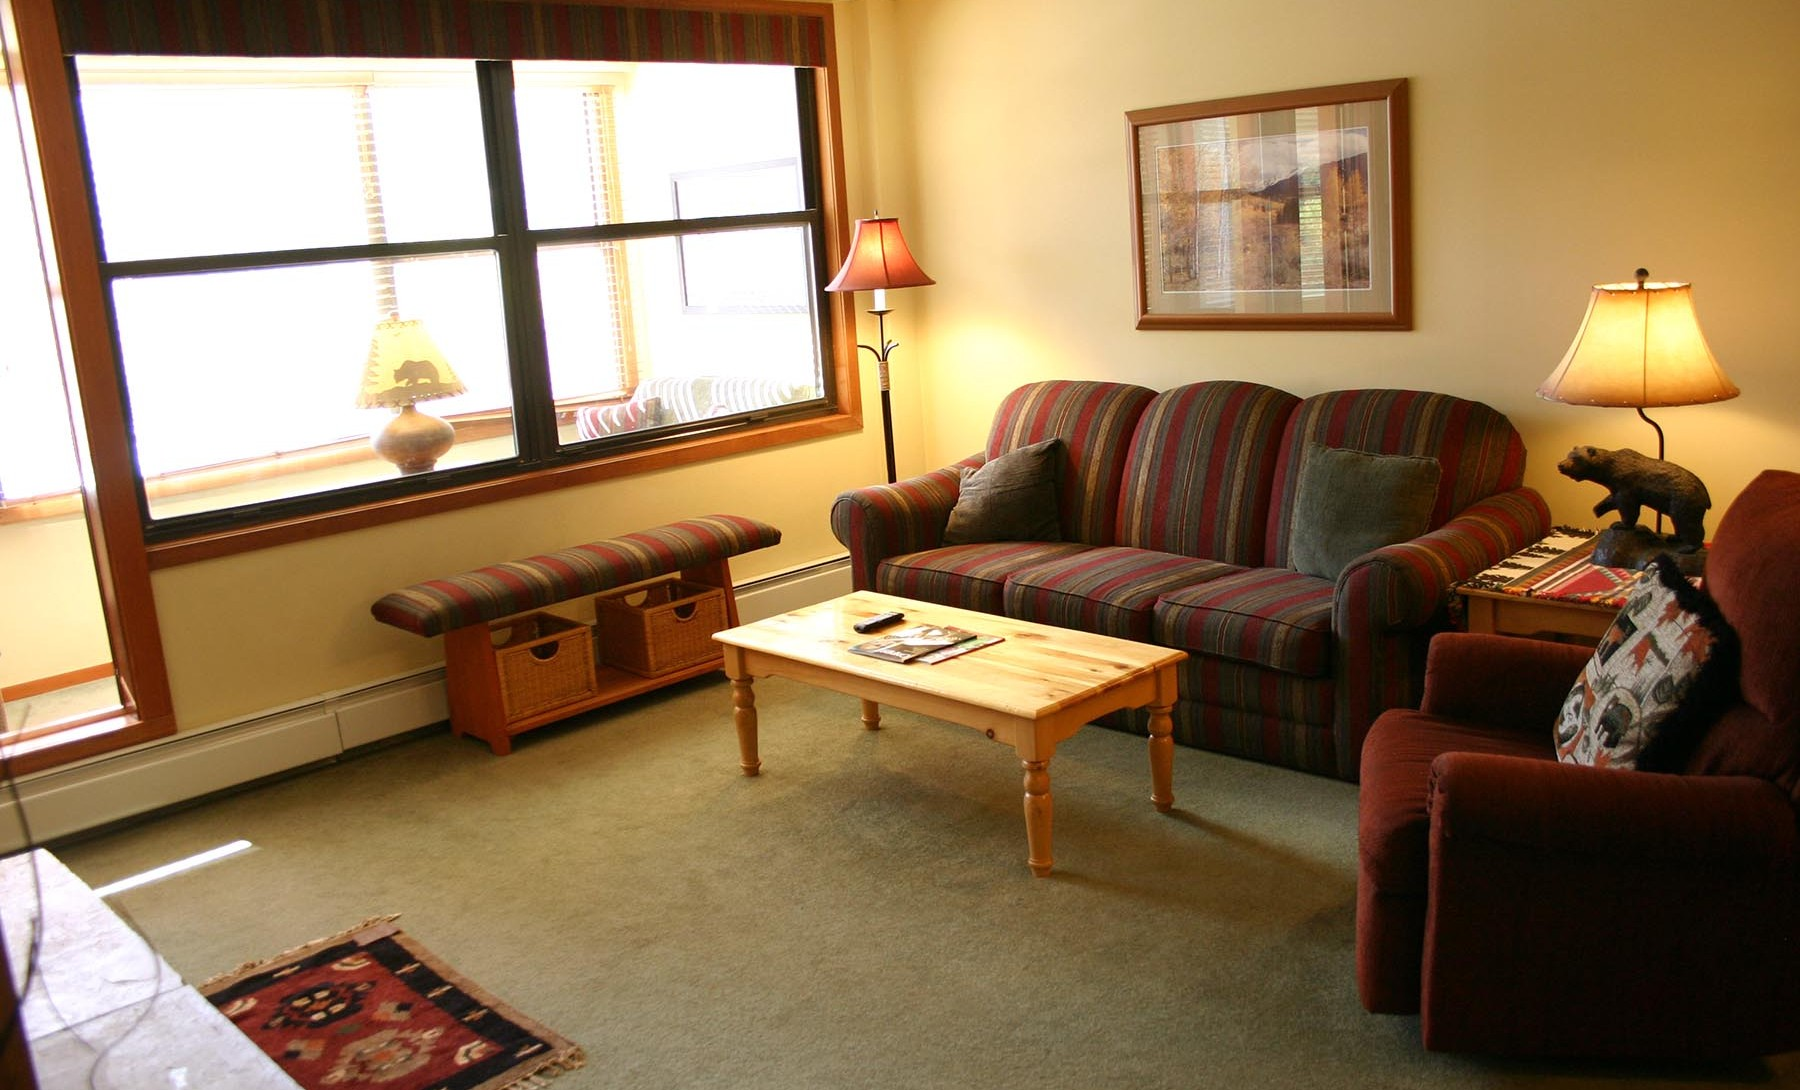 Unit 329 - Village Square Living Room